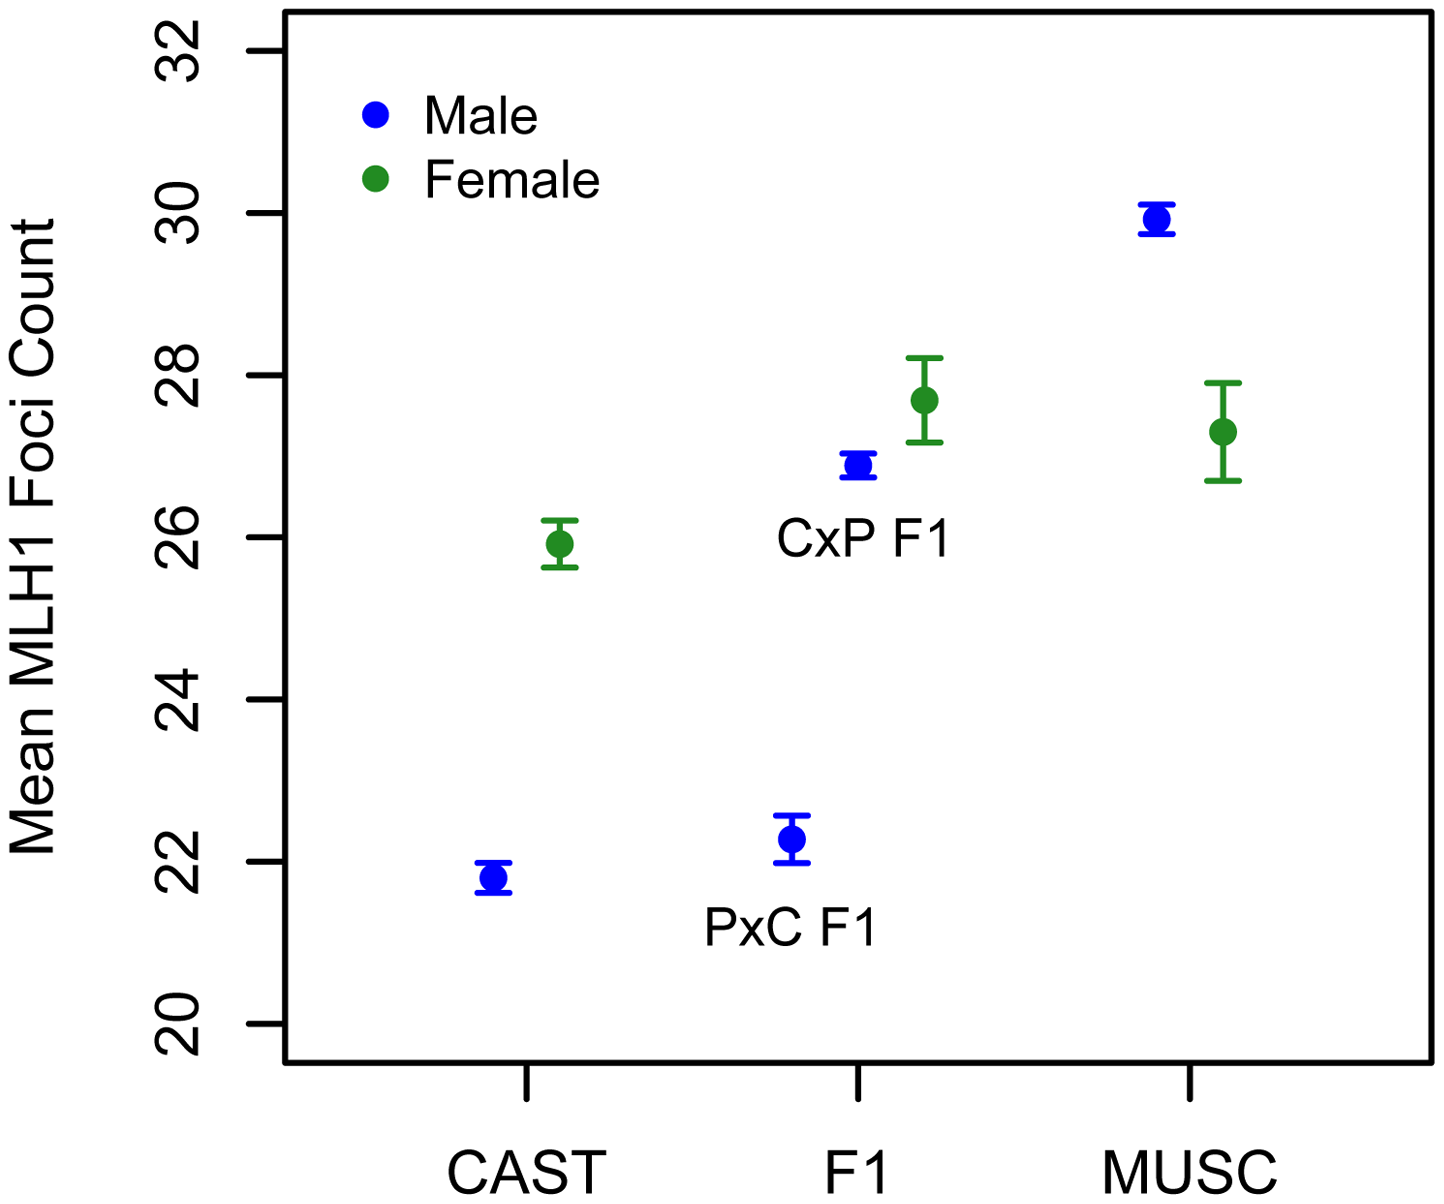 Variation in mean MLH1 foci counts (±2 standard errors) between males (blue) and females (green) of inbred CAST, PWD, and inter-subspecific CASTxPWD (CxP) and PWDxCAST (PxC) F1 origin.